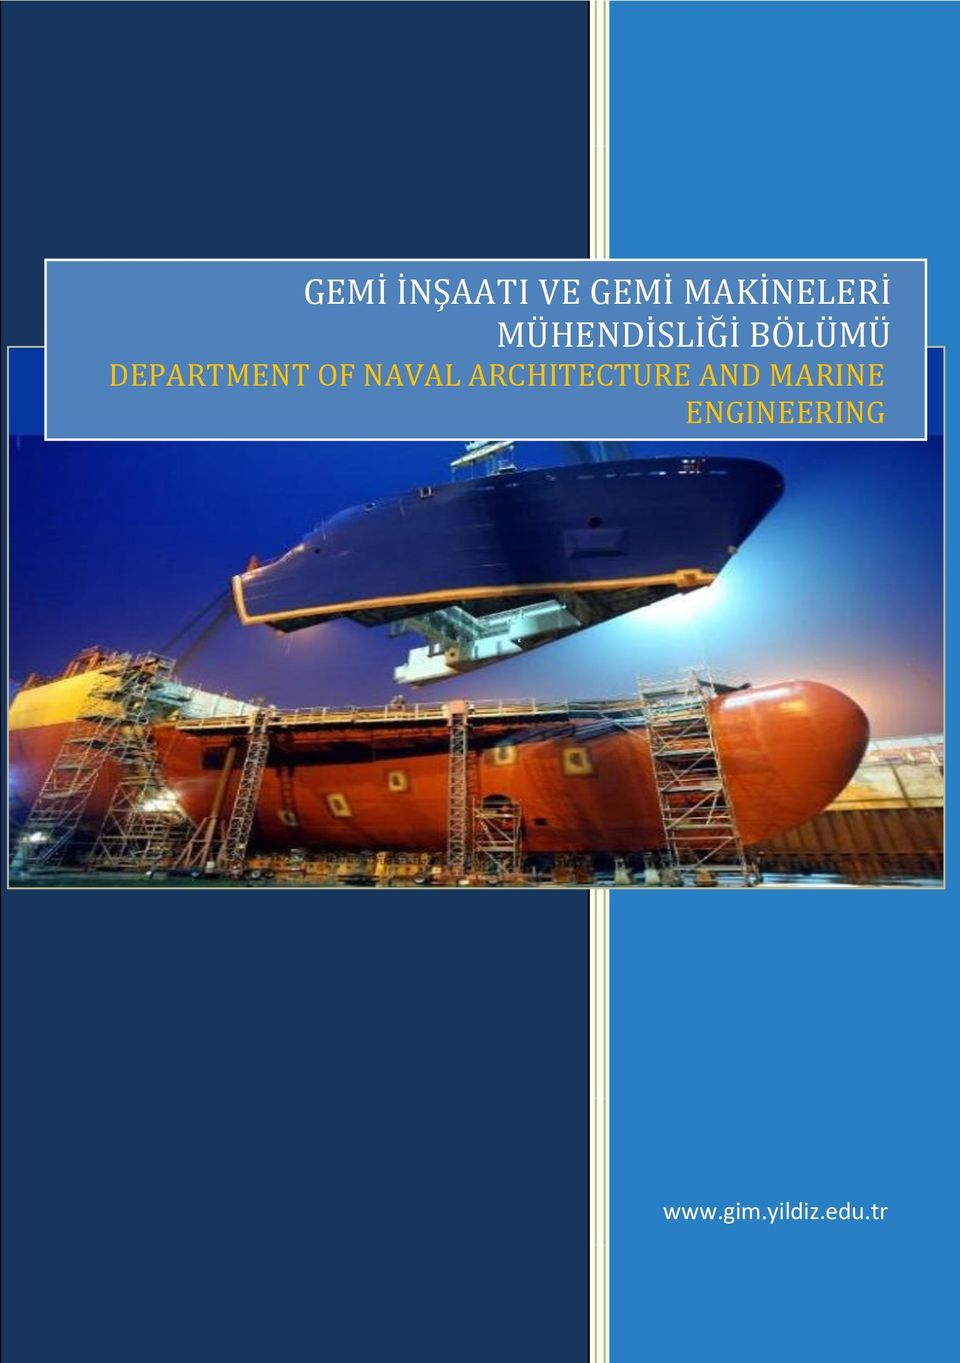 OF NAVAL ARCHITECTURE AND MARINE